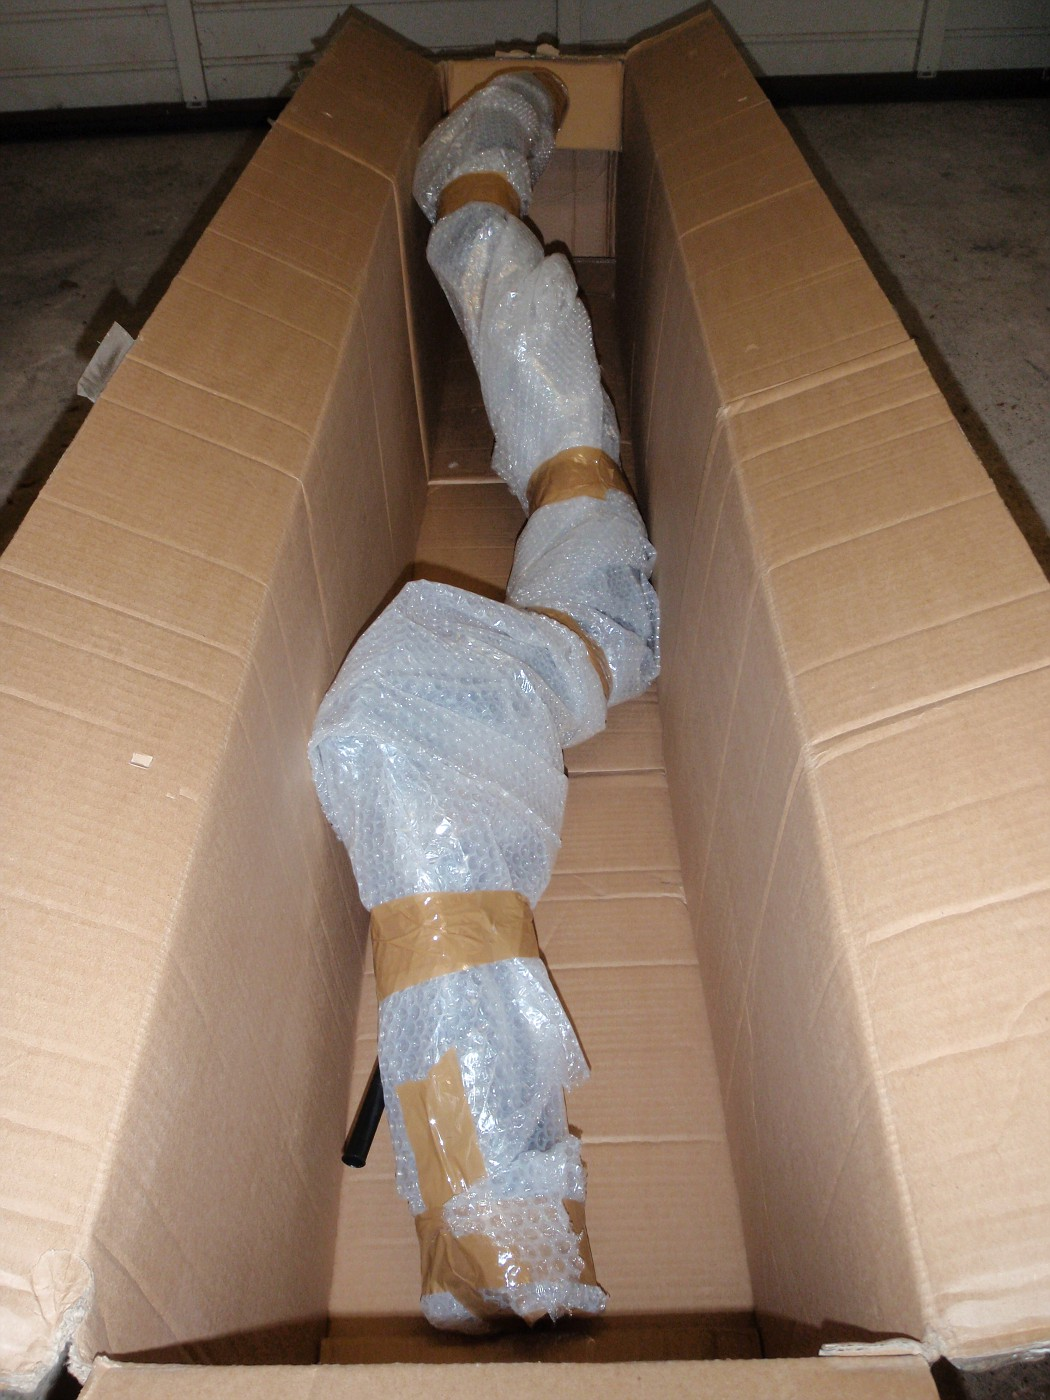 Parcel from Santa Claus